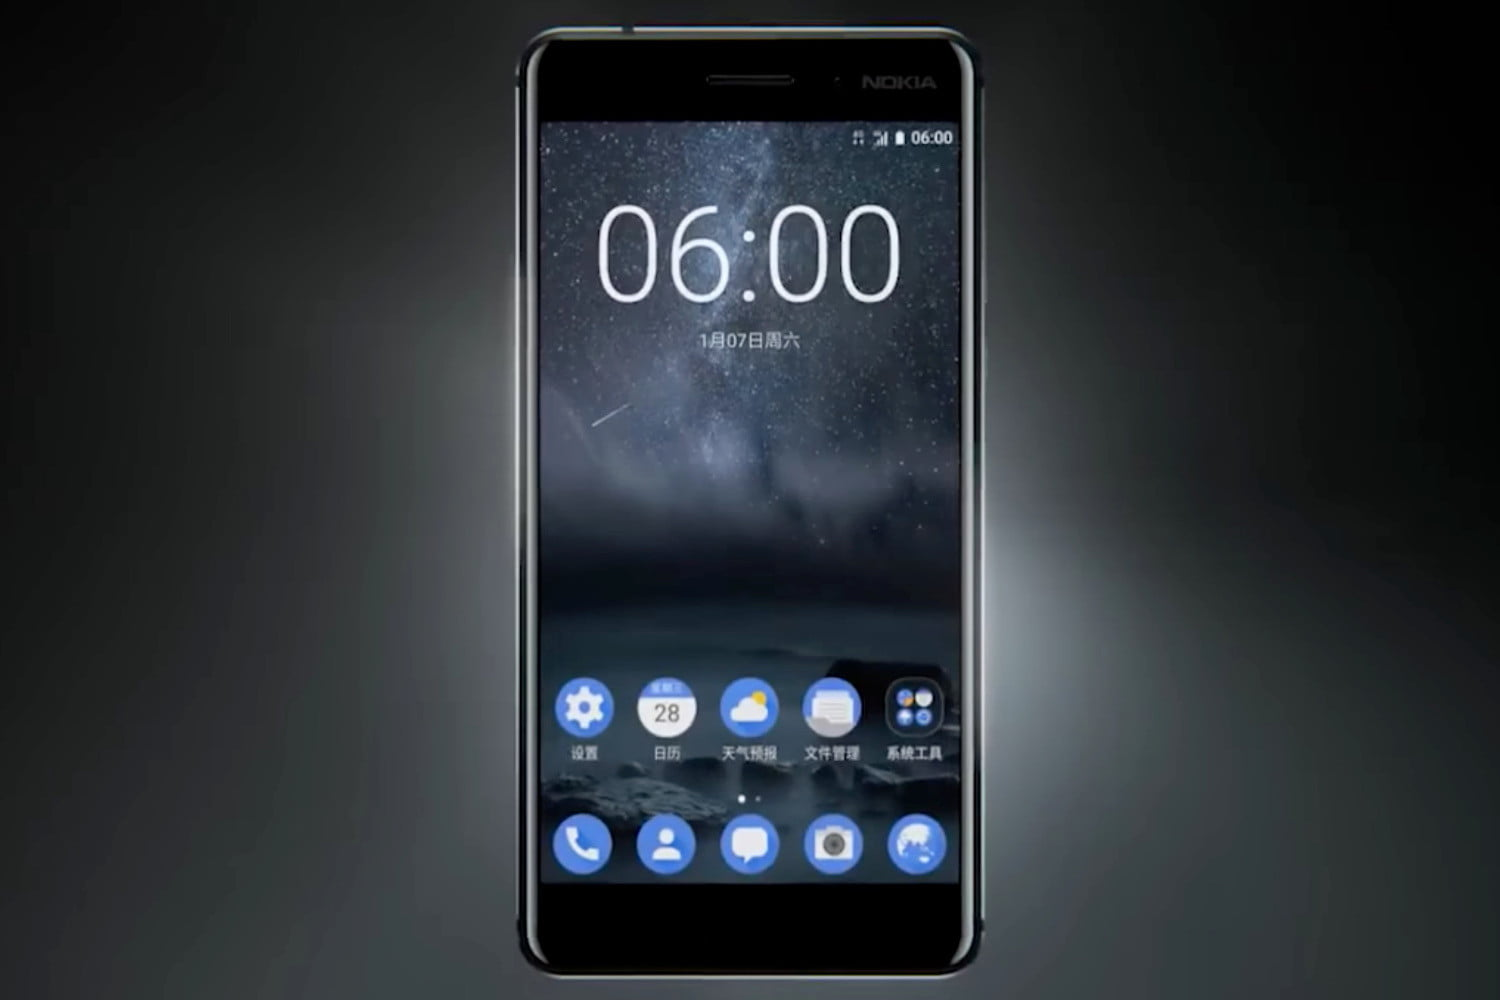 Phone Latest Android Phone Version nokia android phones 2017 news rumors release specs digital unfortunately its not all good the device comes with a somewhat disappointing qualcomm snapdragon 430 and it